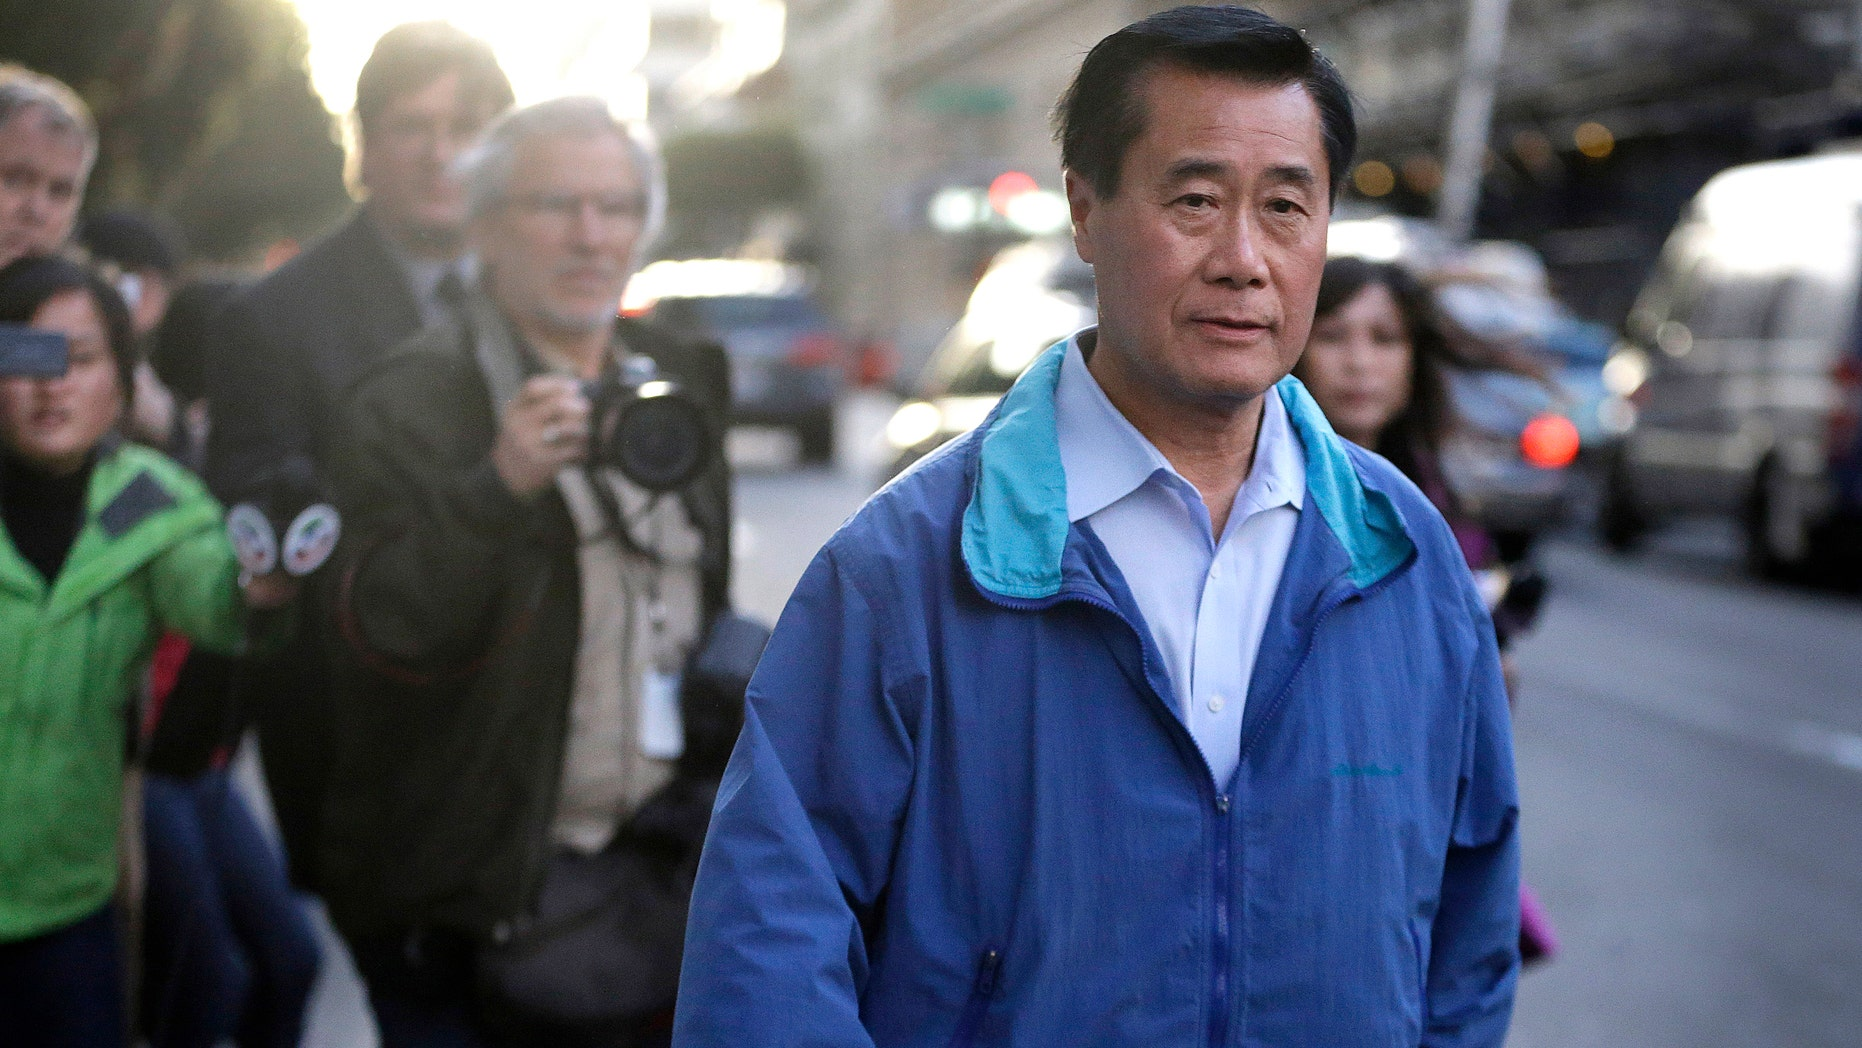 California state Sen. Leland Yee, D-San Francisco, on Wednesday, March 26, 2014.